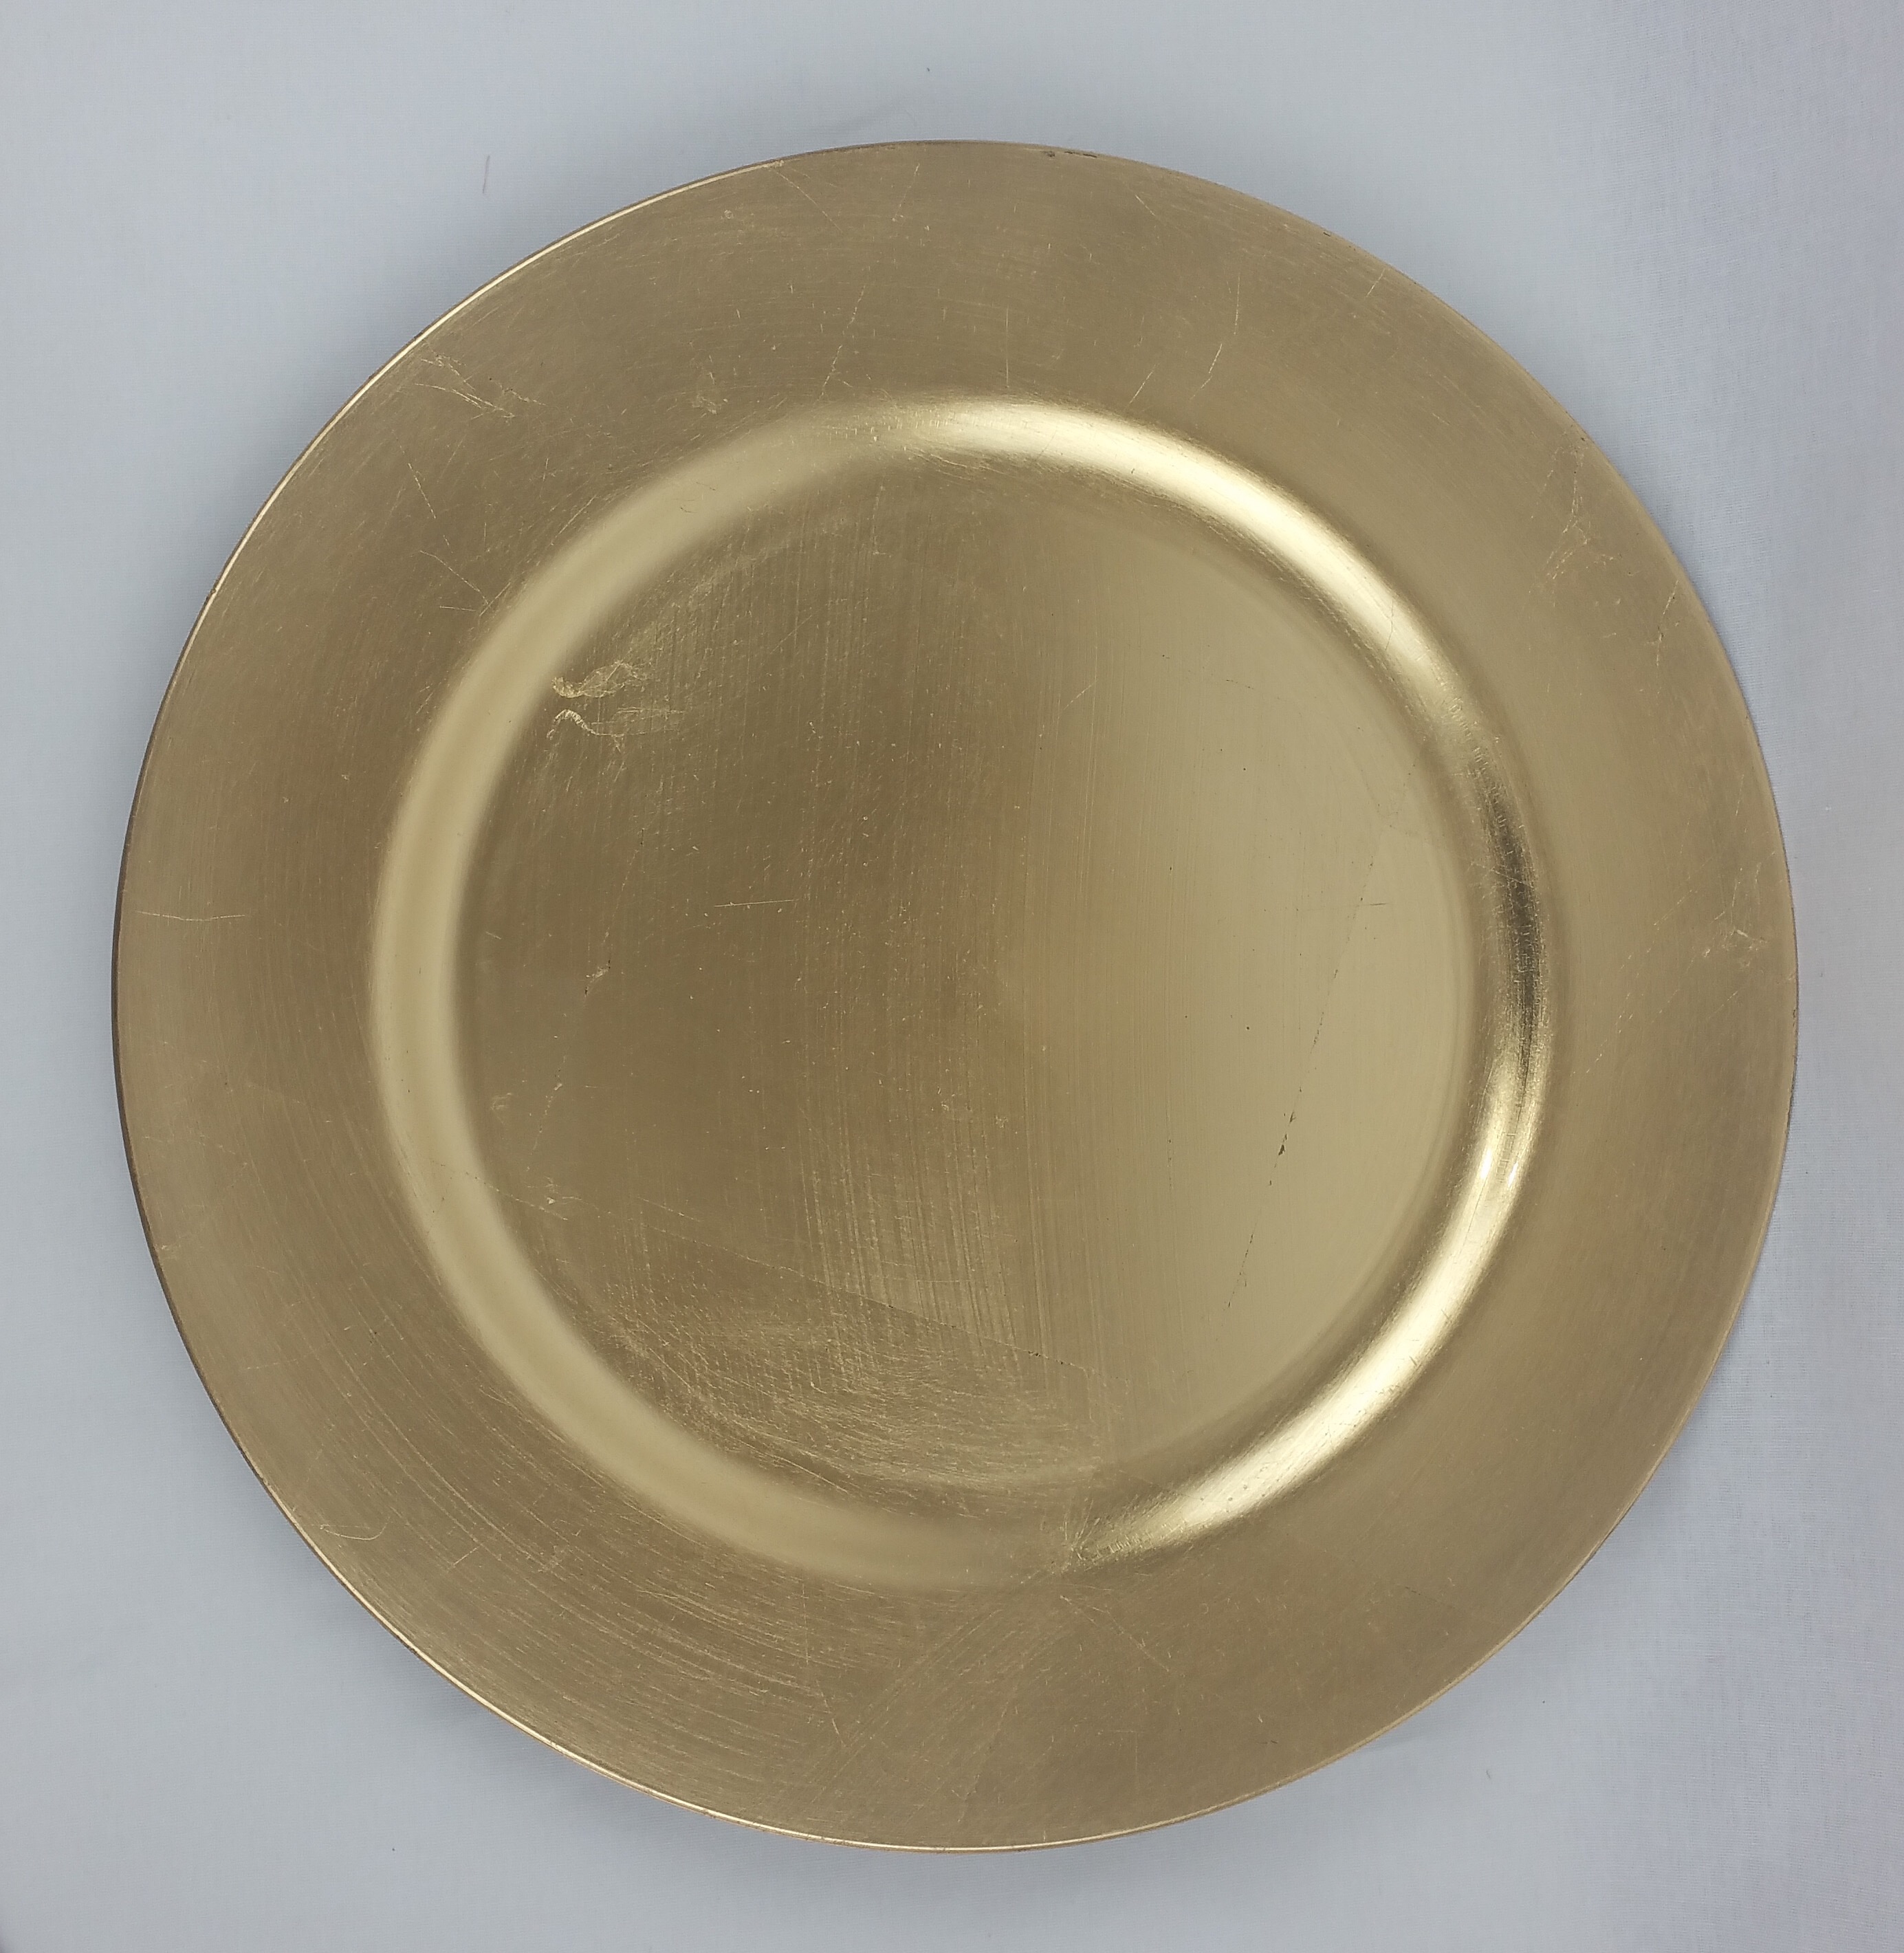 Gold charger plate (plastic). From £0.75p each.